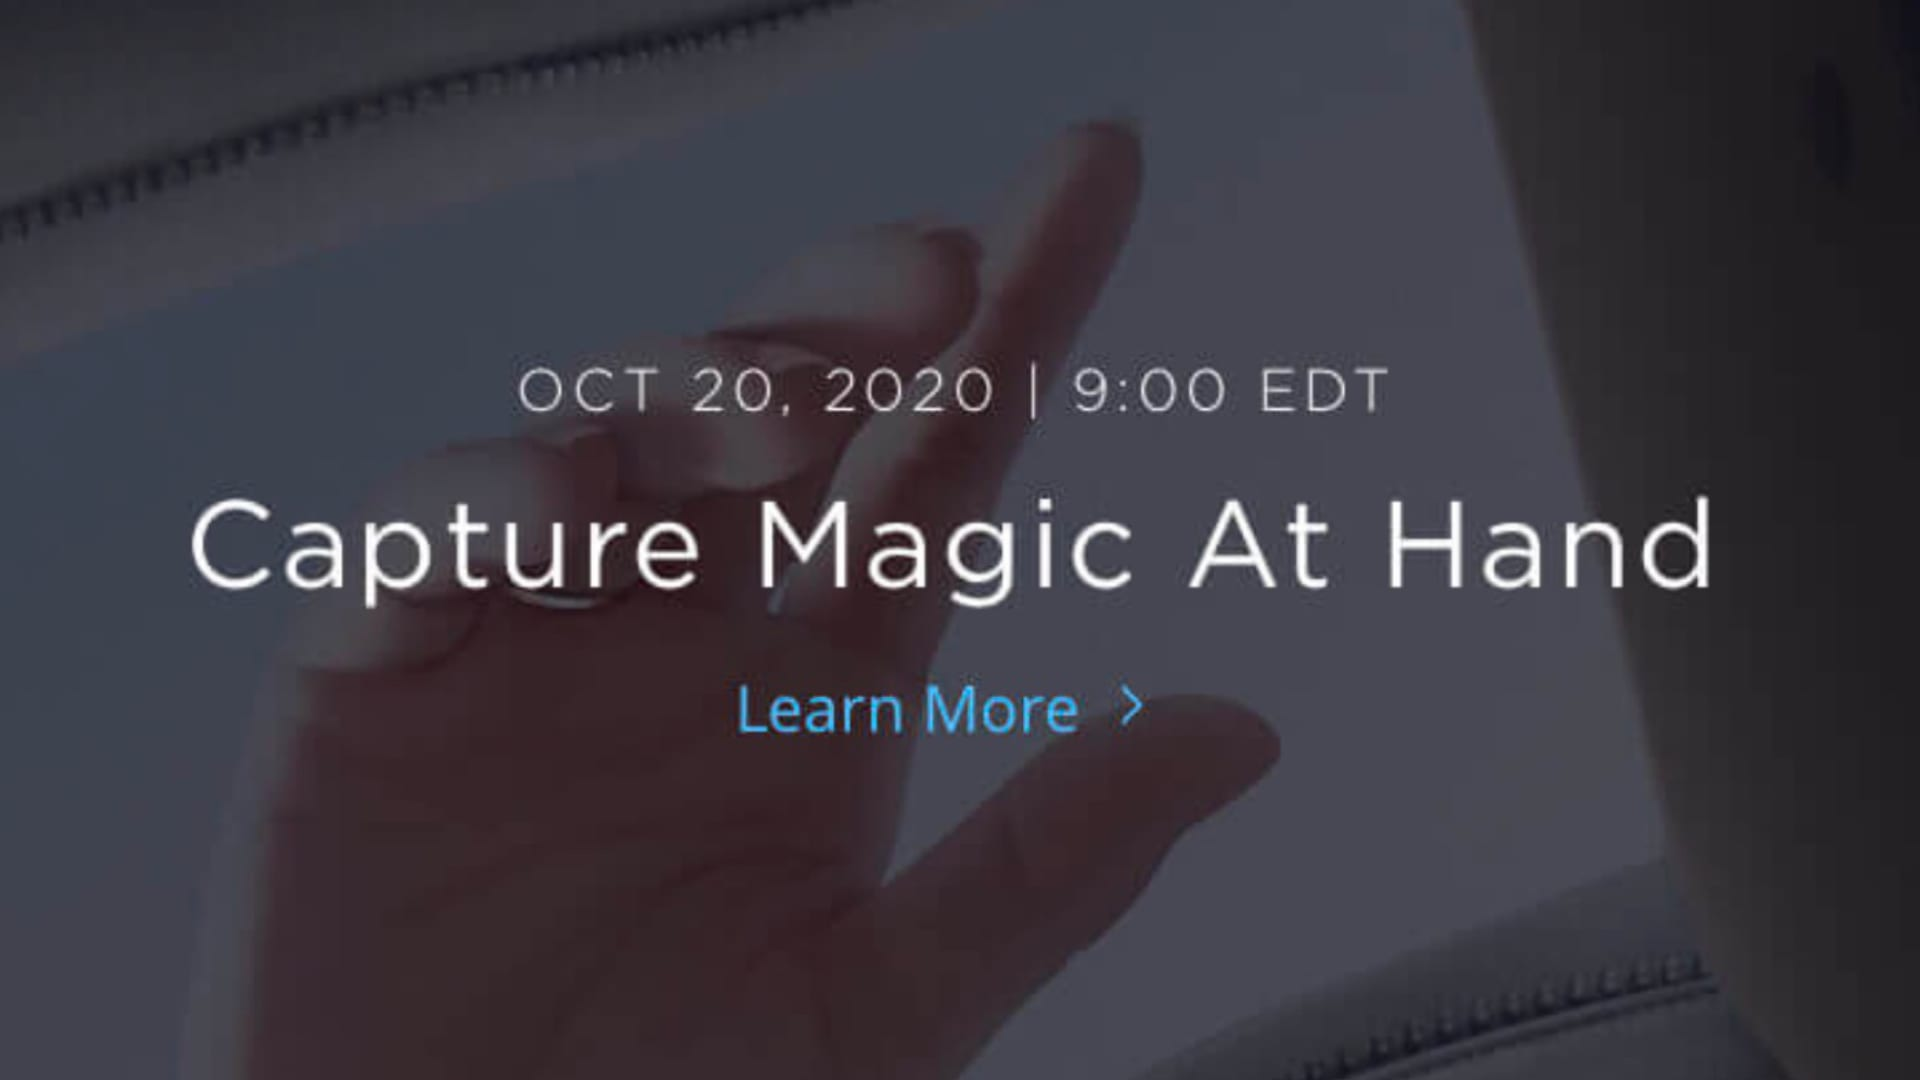 DJI announcement: Capture Magic At Hand